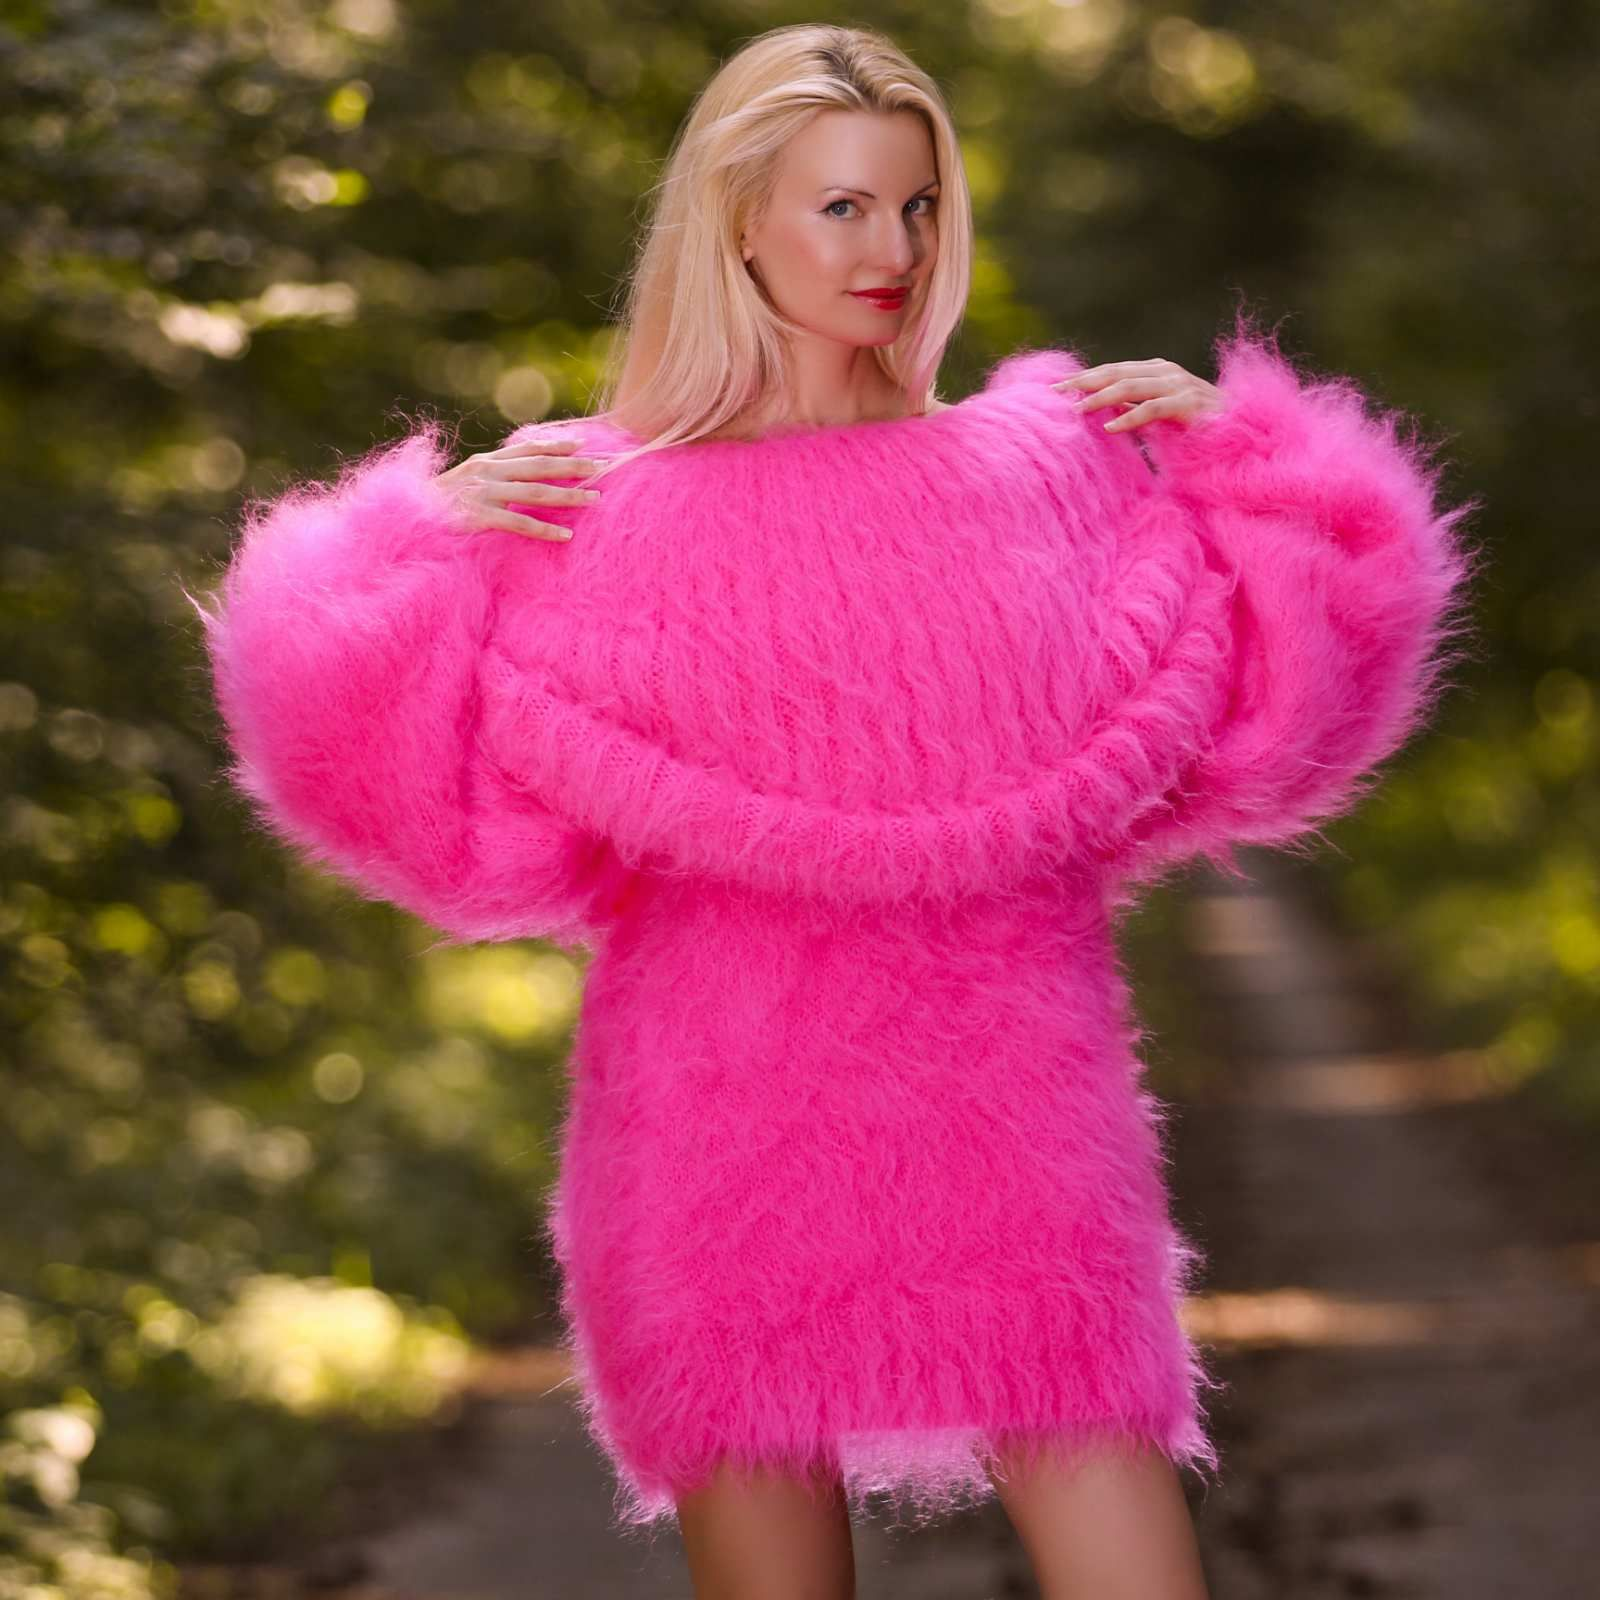 100% hand knitted fuzzy mohair sweater dress in neon pink, size S ...